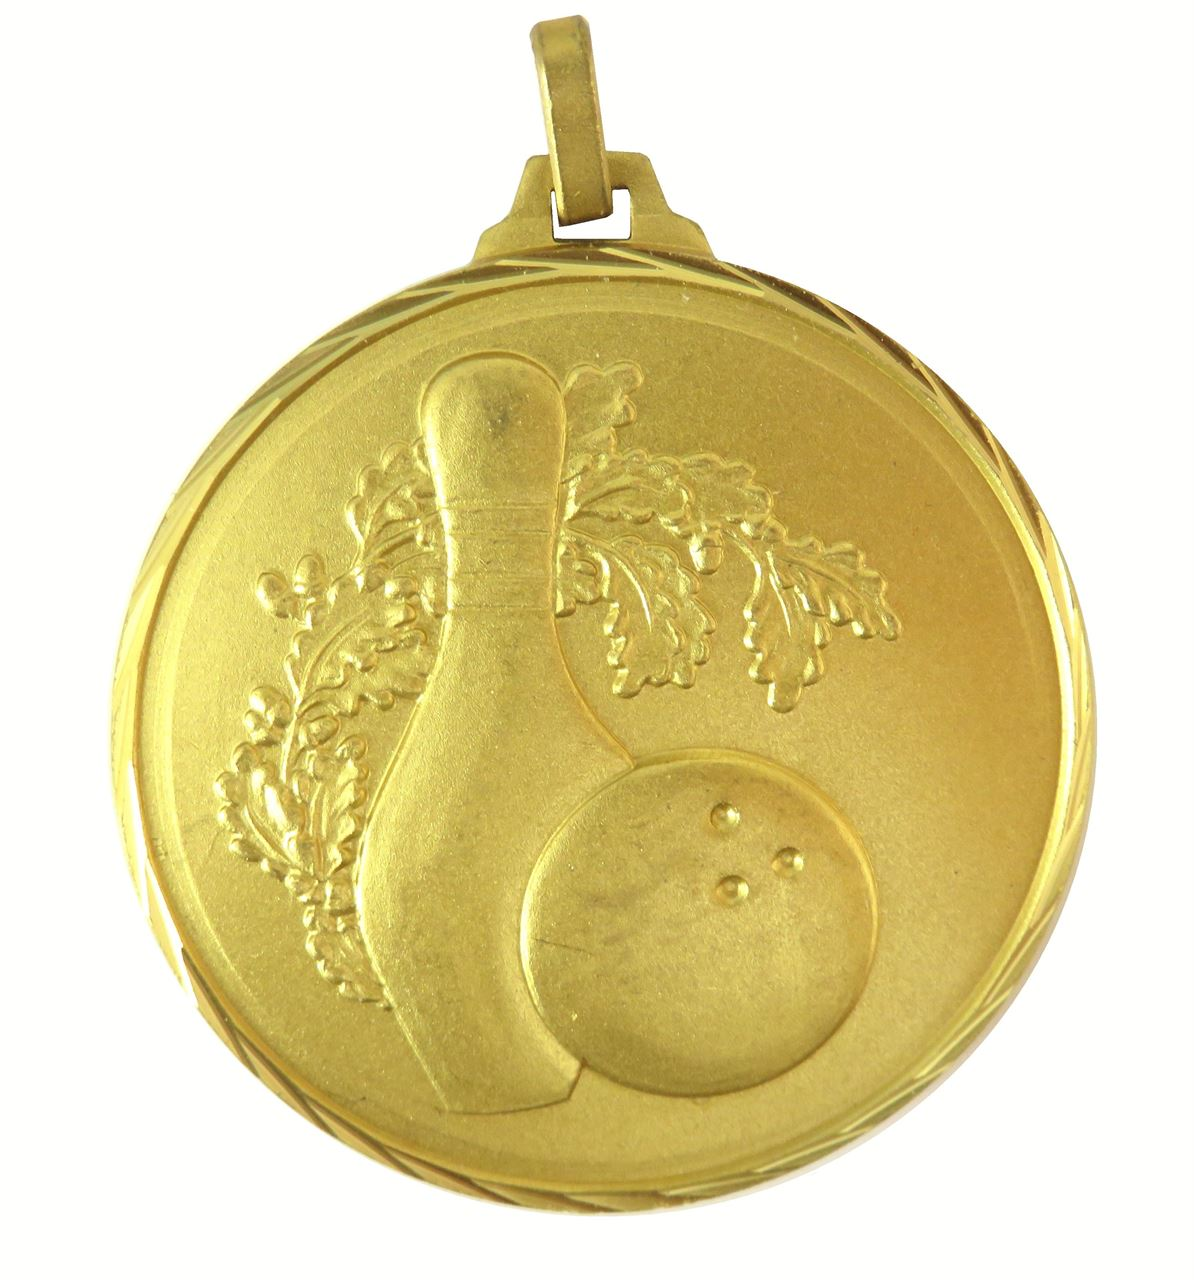 Gold Faceted Ten Pin Bowling Medal (size: 42mm and 52mm) - 366F